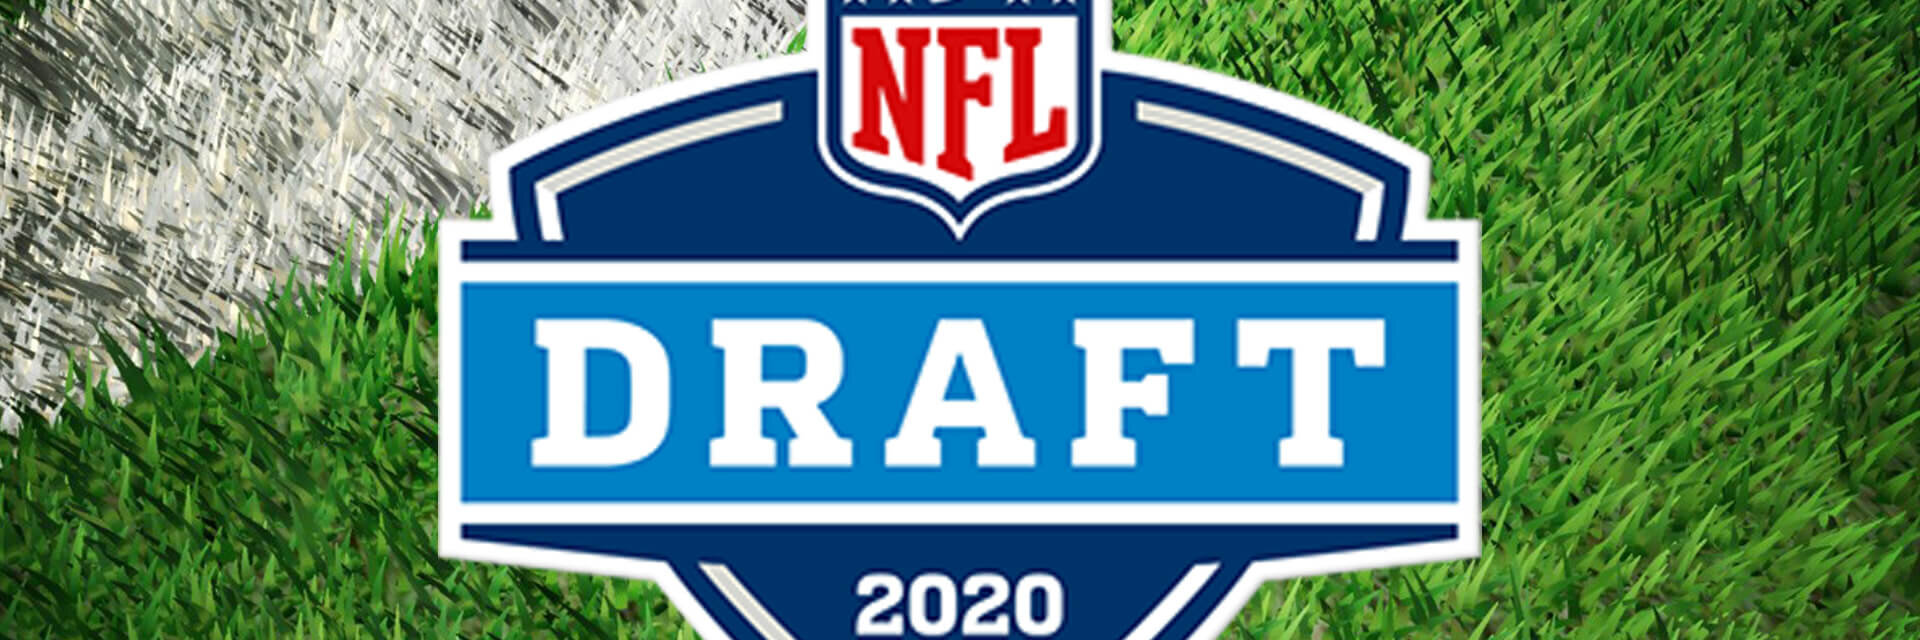 NFL Draft Order & Rounds For 2020